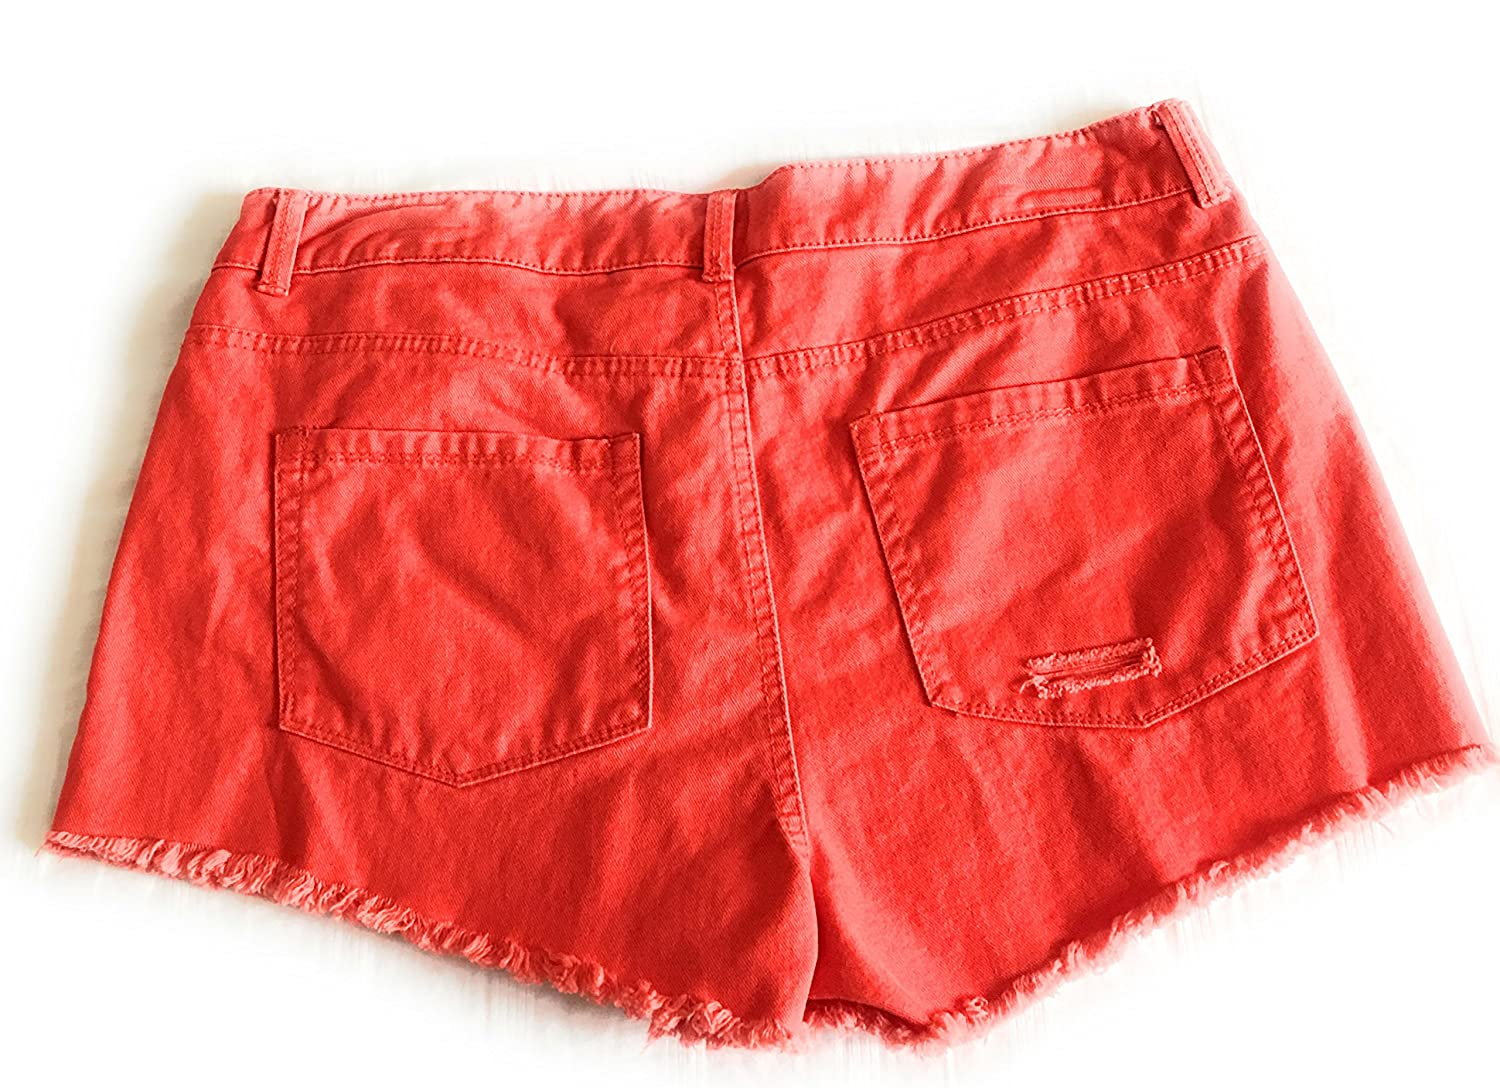 5fb3095812 Copper Key Juniors Denims Cutout Shorts-Red-size 7 at Amazon Women's  Clothing store: